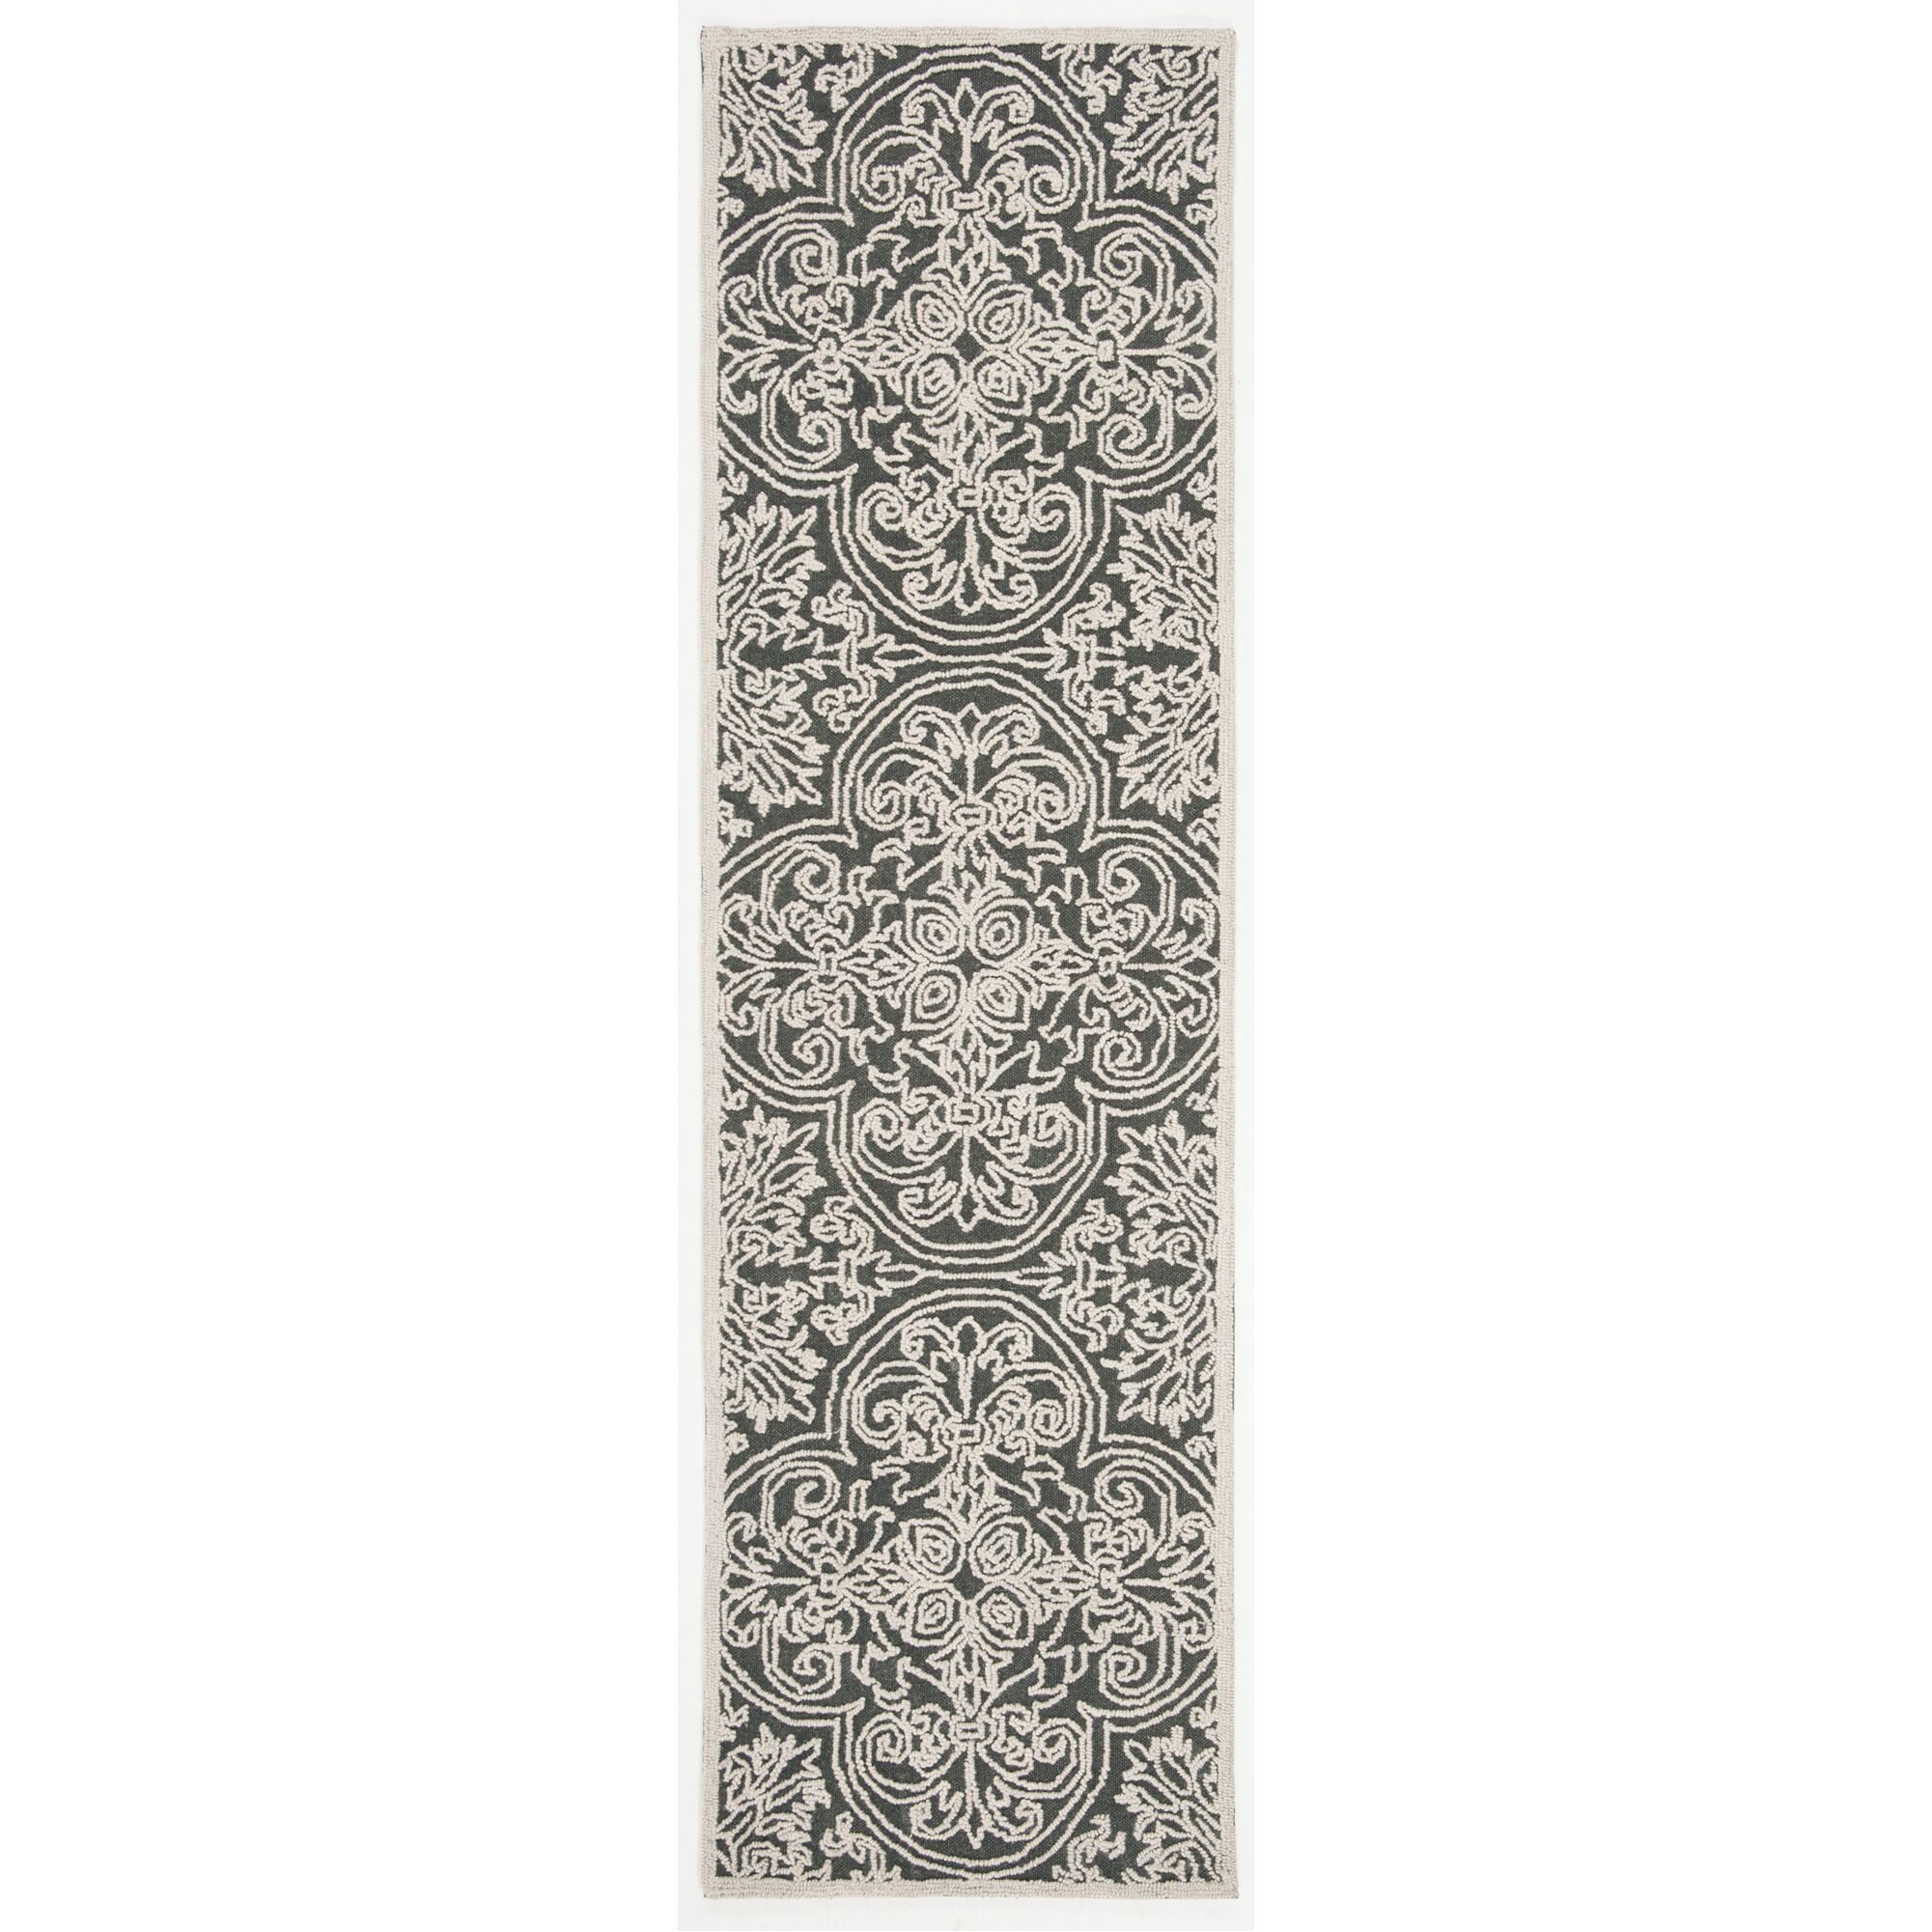 Marys Hand Tufted Wool Dark Gray Area Rug Rug Size: Runner 2'3